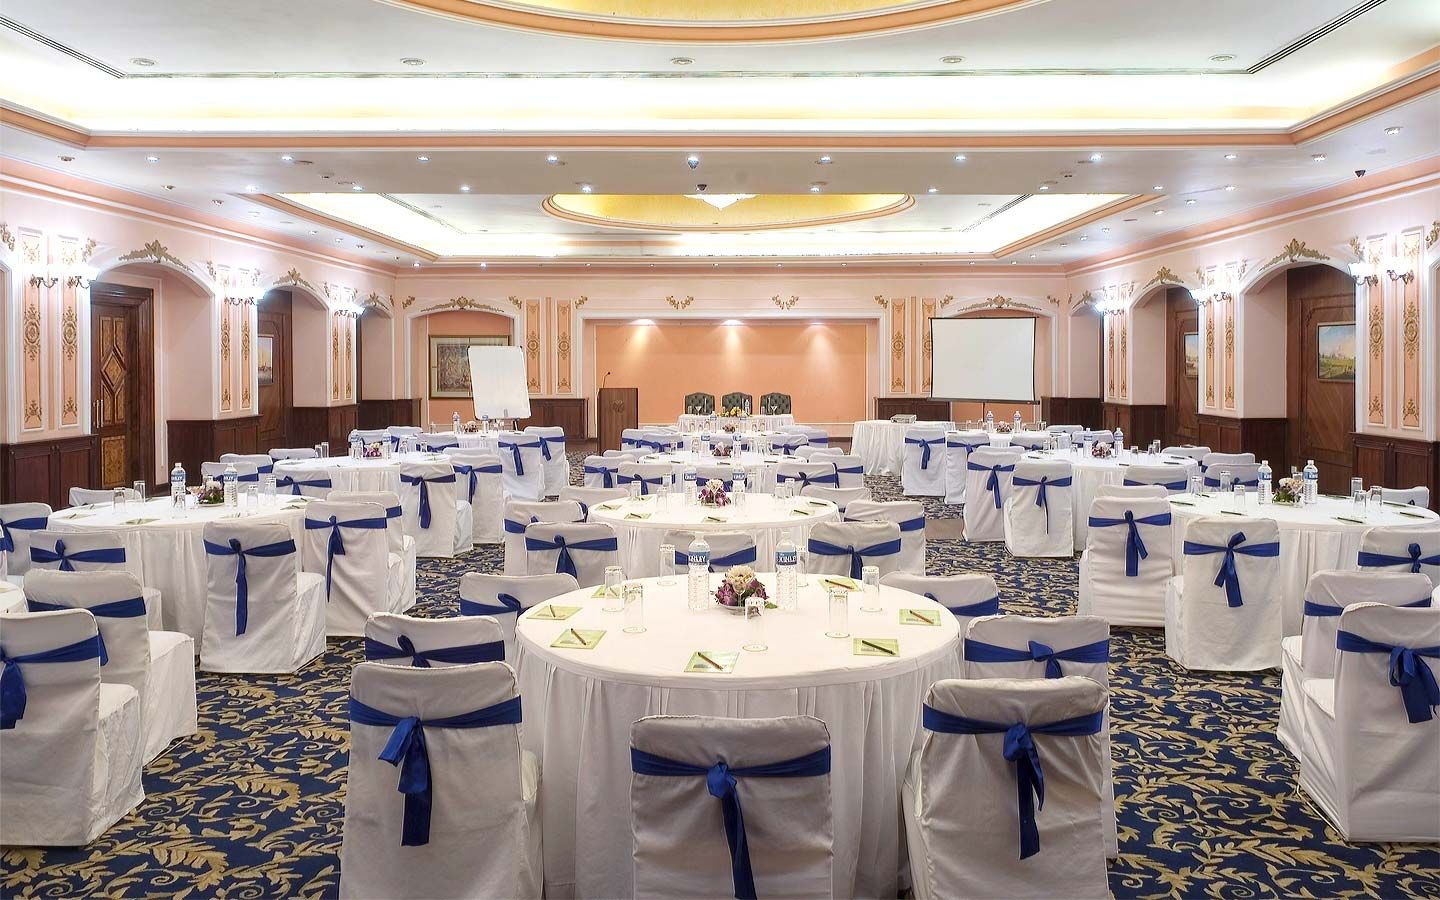 Advance Online Banquet Halls Venues Booking For Reception Birthday Engagement Functions Conference Meetings Events In Attapur Hyderabad